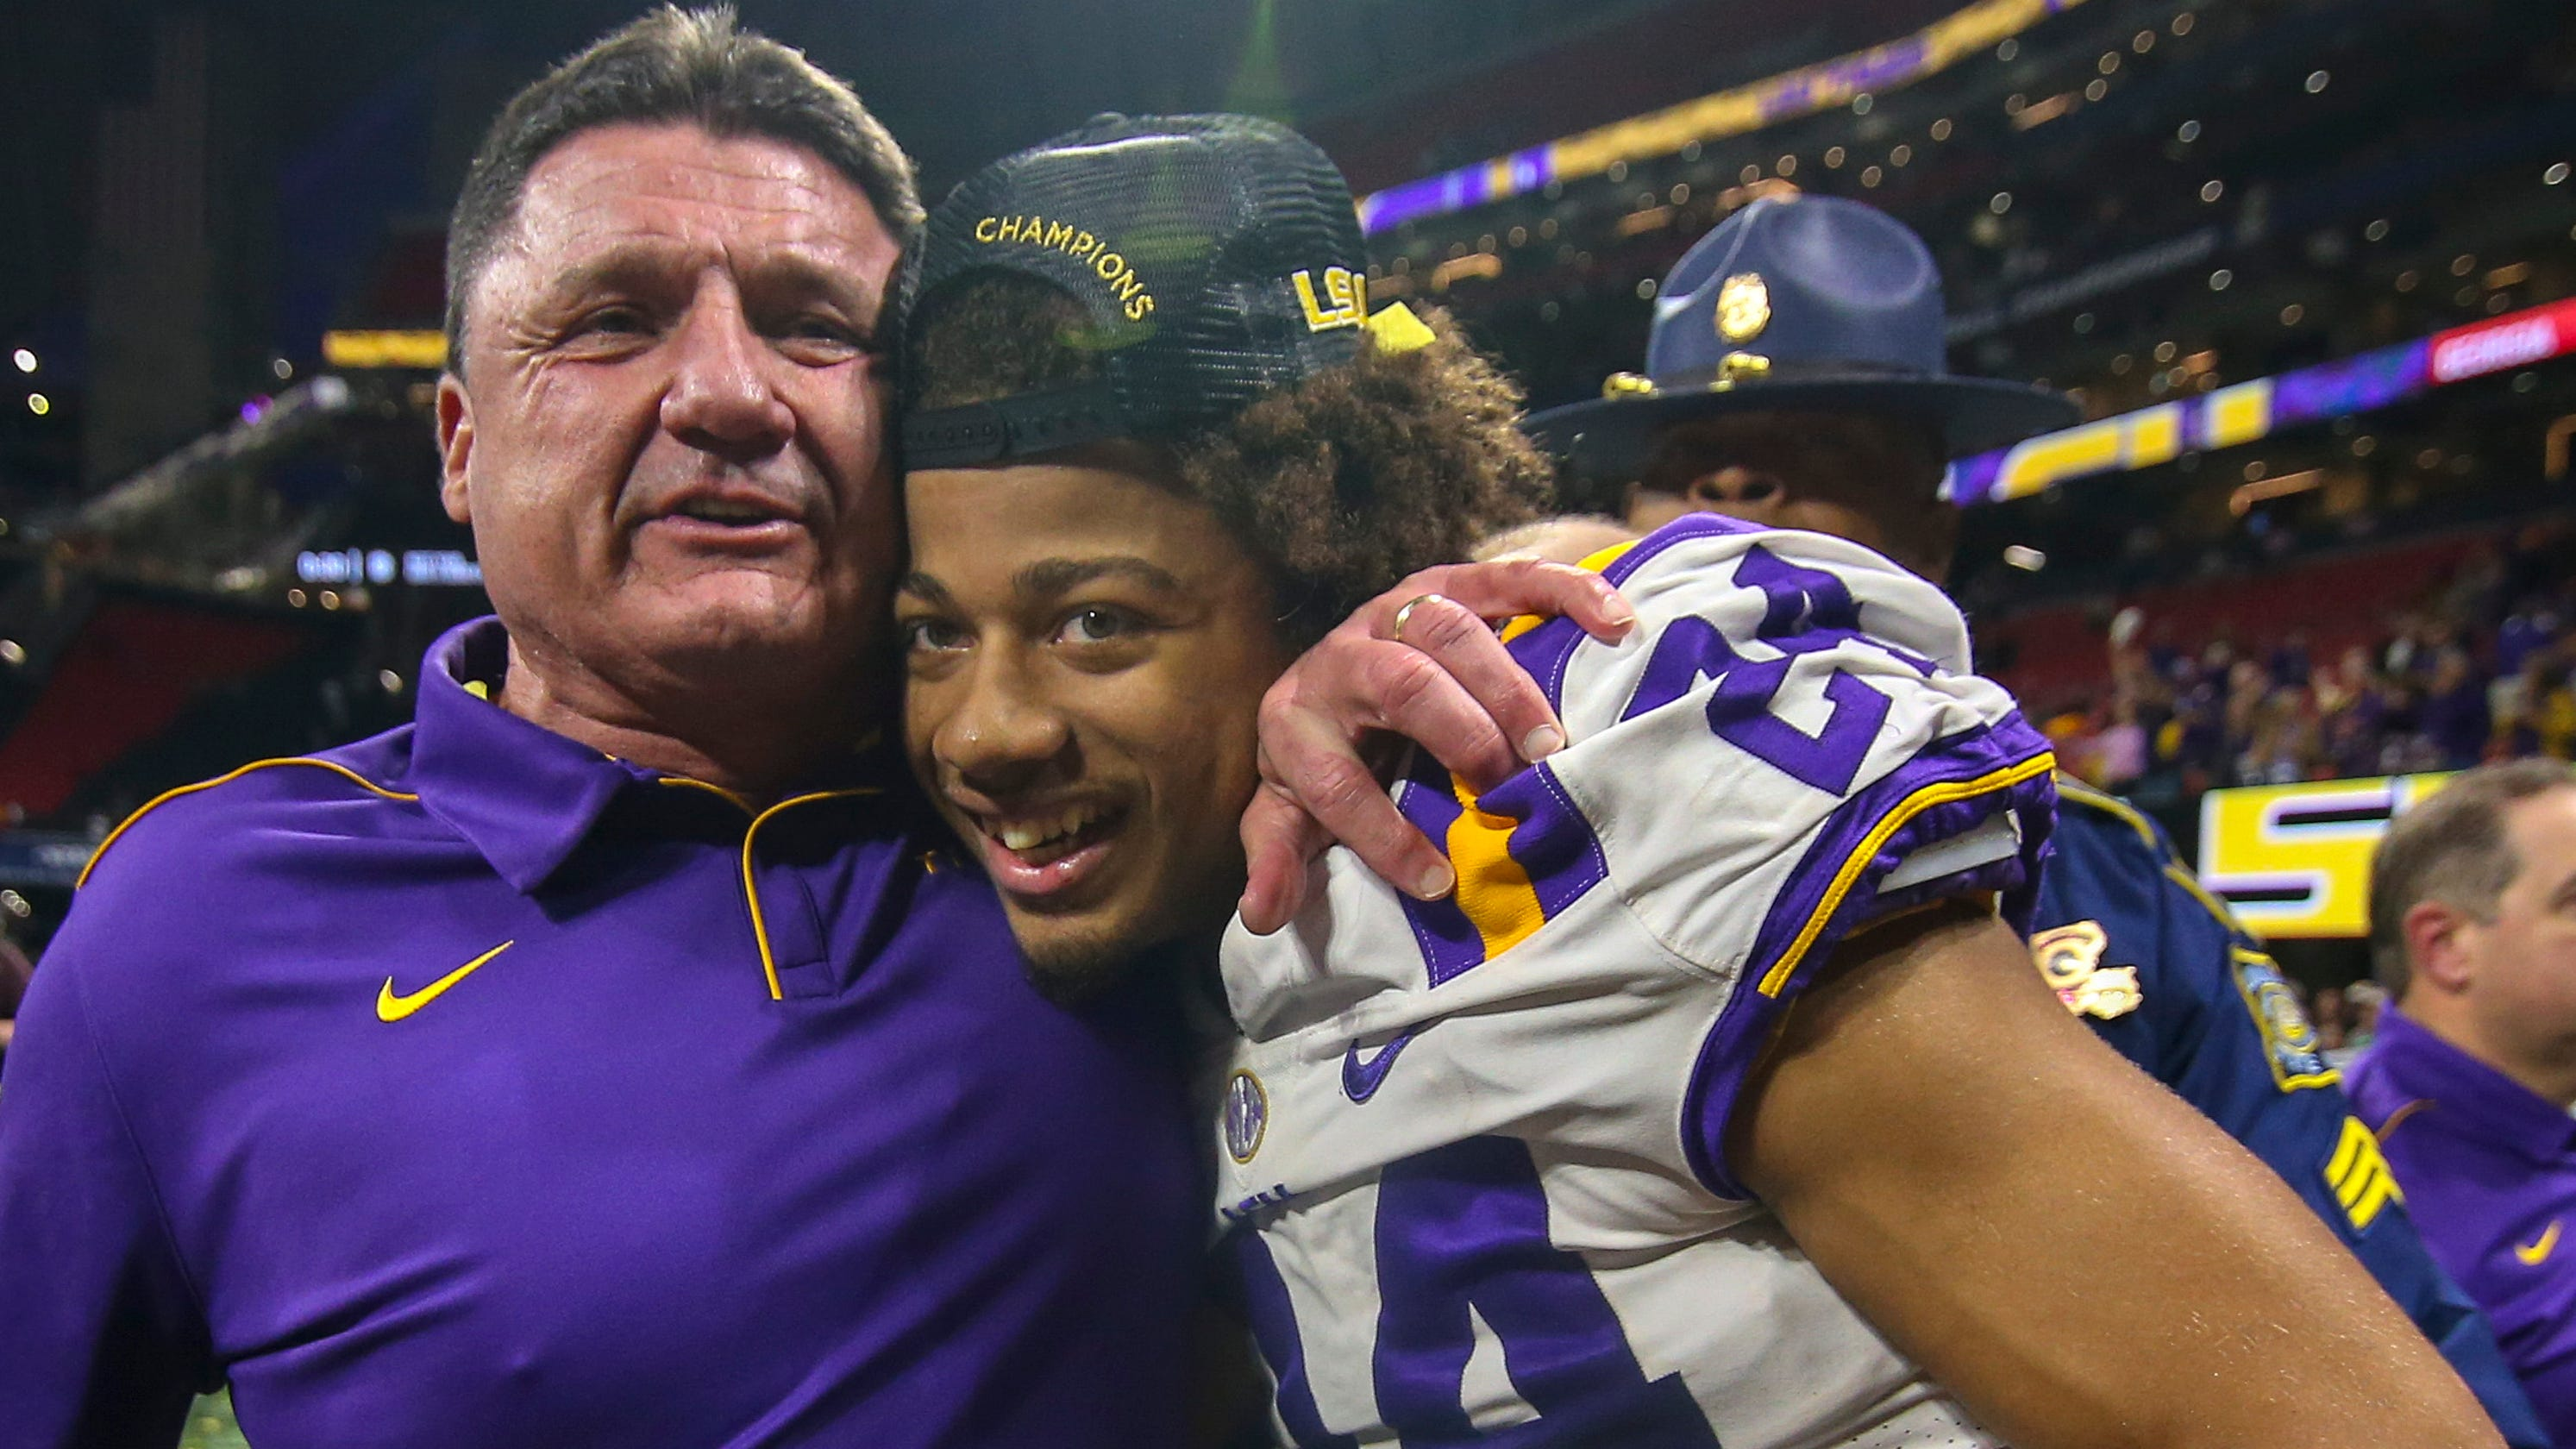 LSU star Derek Stingley Jr. hospitalized Friday, expected to miss game vs. Mississippi State